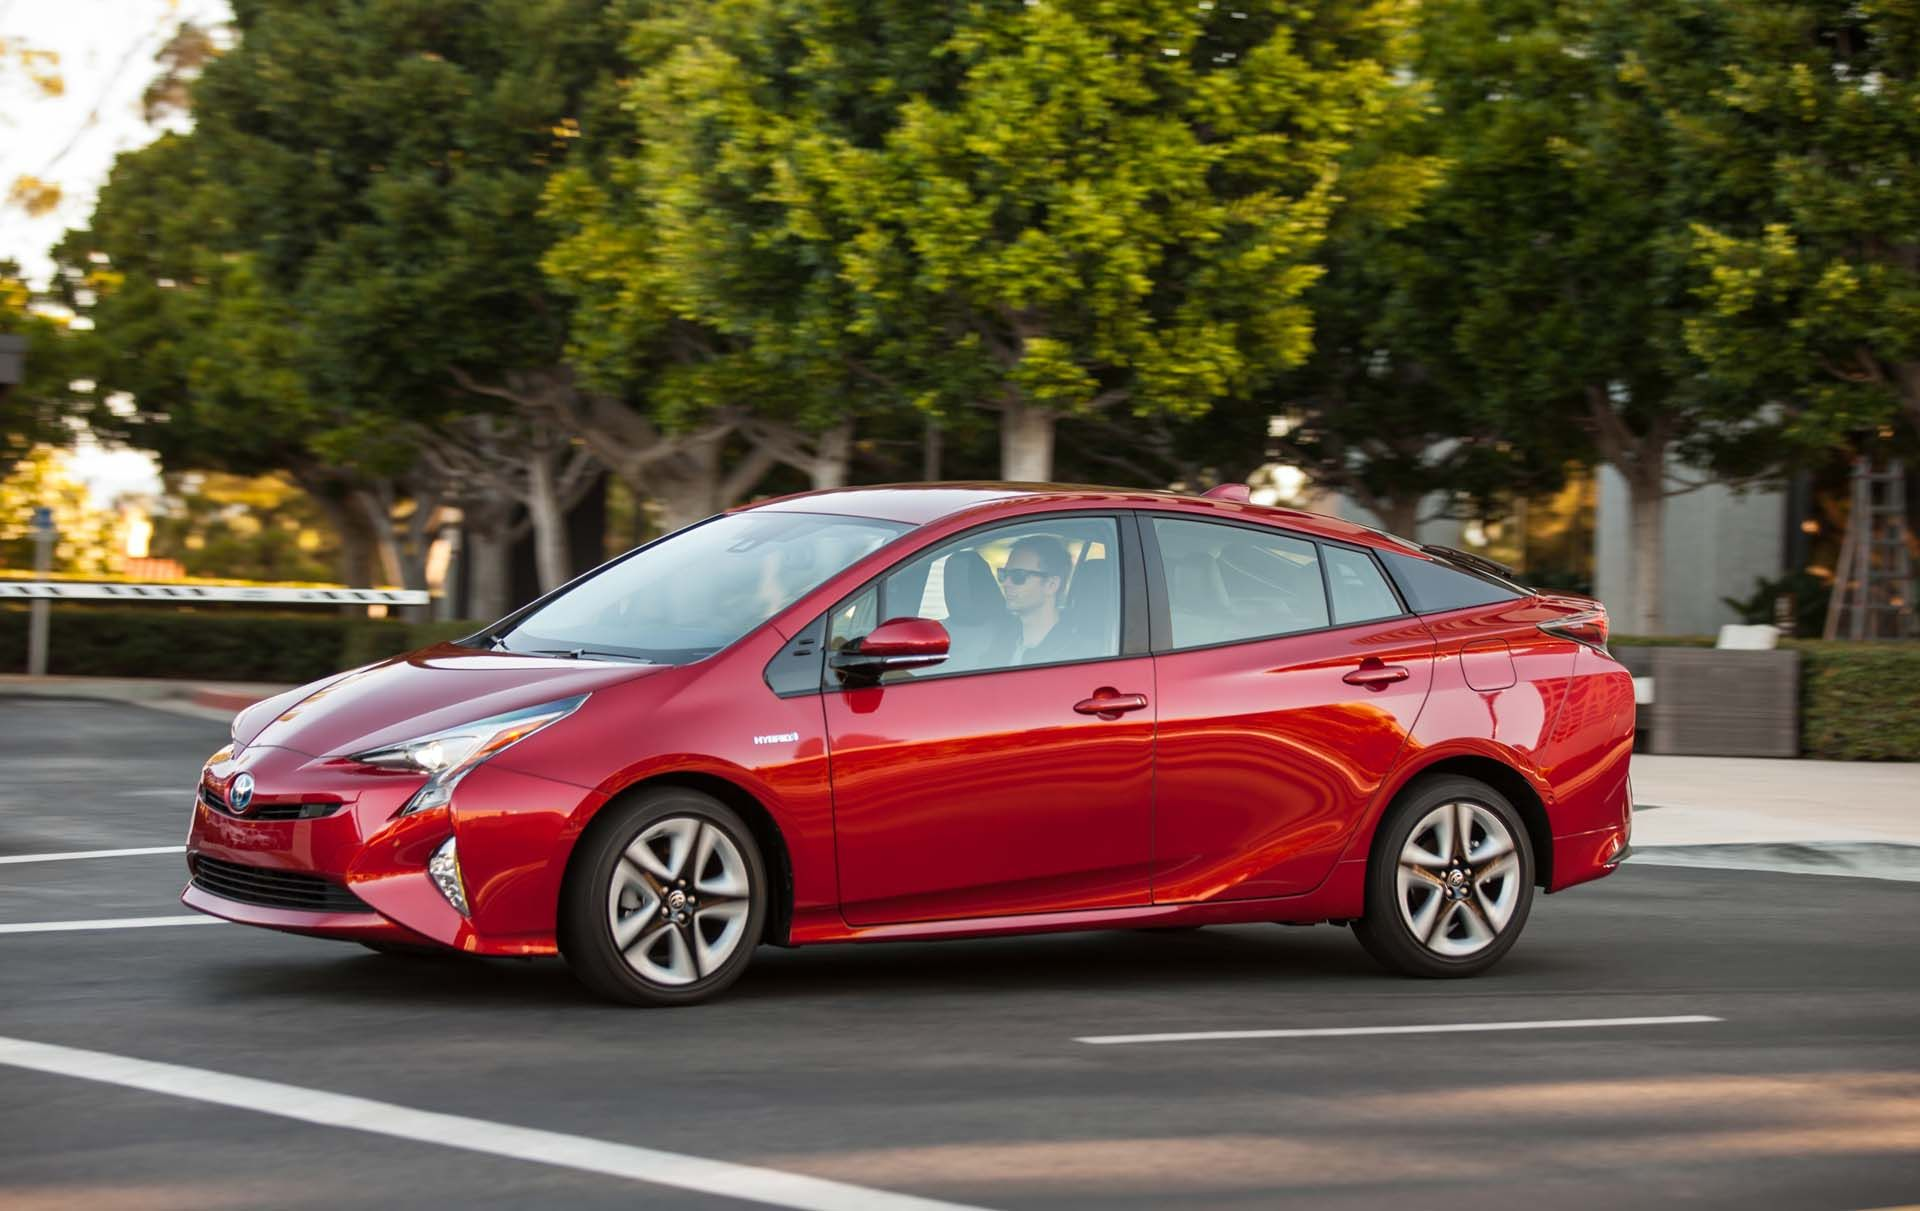 192 000 Toyota Prius Hybrids Recalled Over Fire Risk Toyota